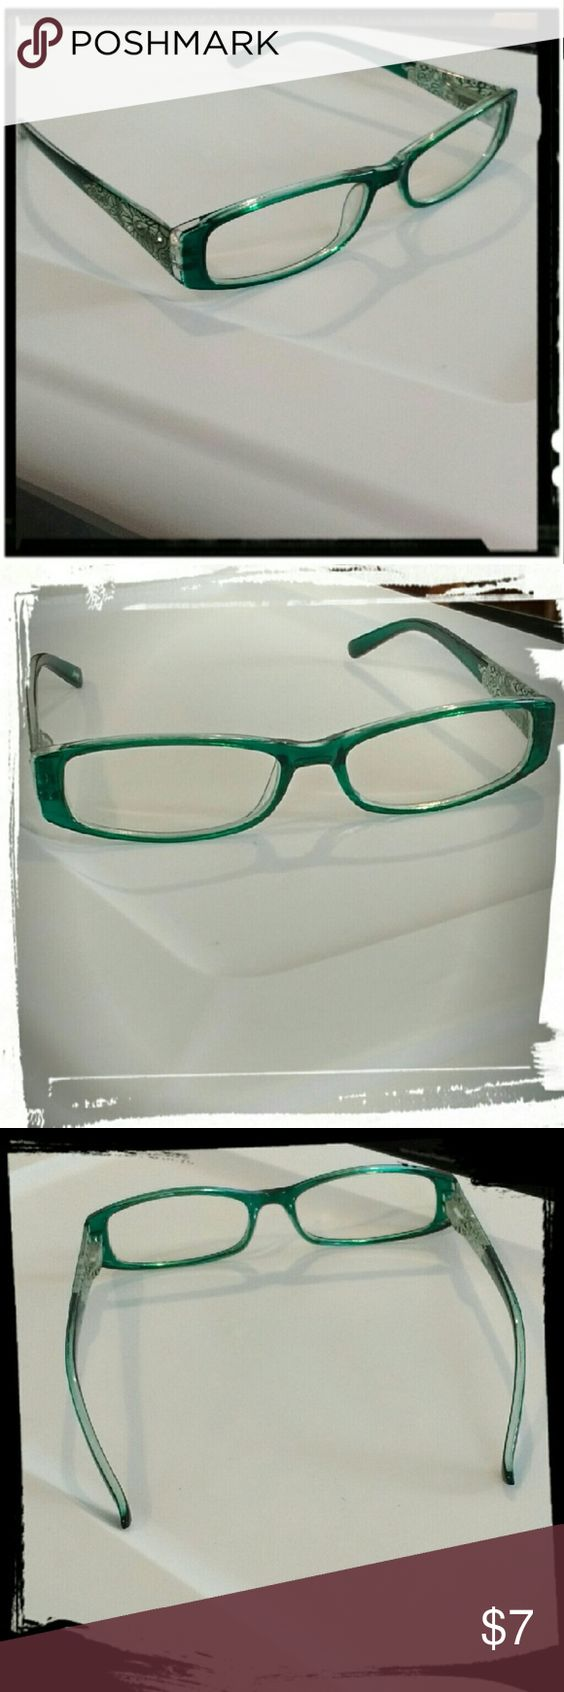 Green Icing glasses Green plastic frame glasses from Icing. Non prescription. Worn once. Icing Accessories Glasses